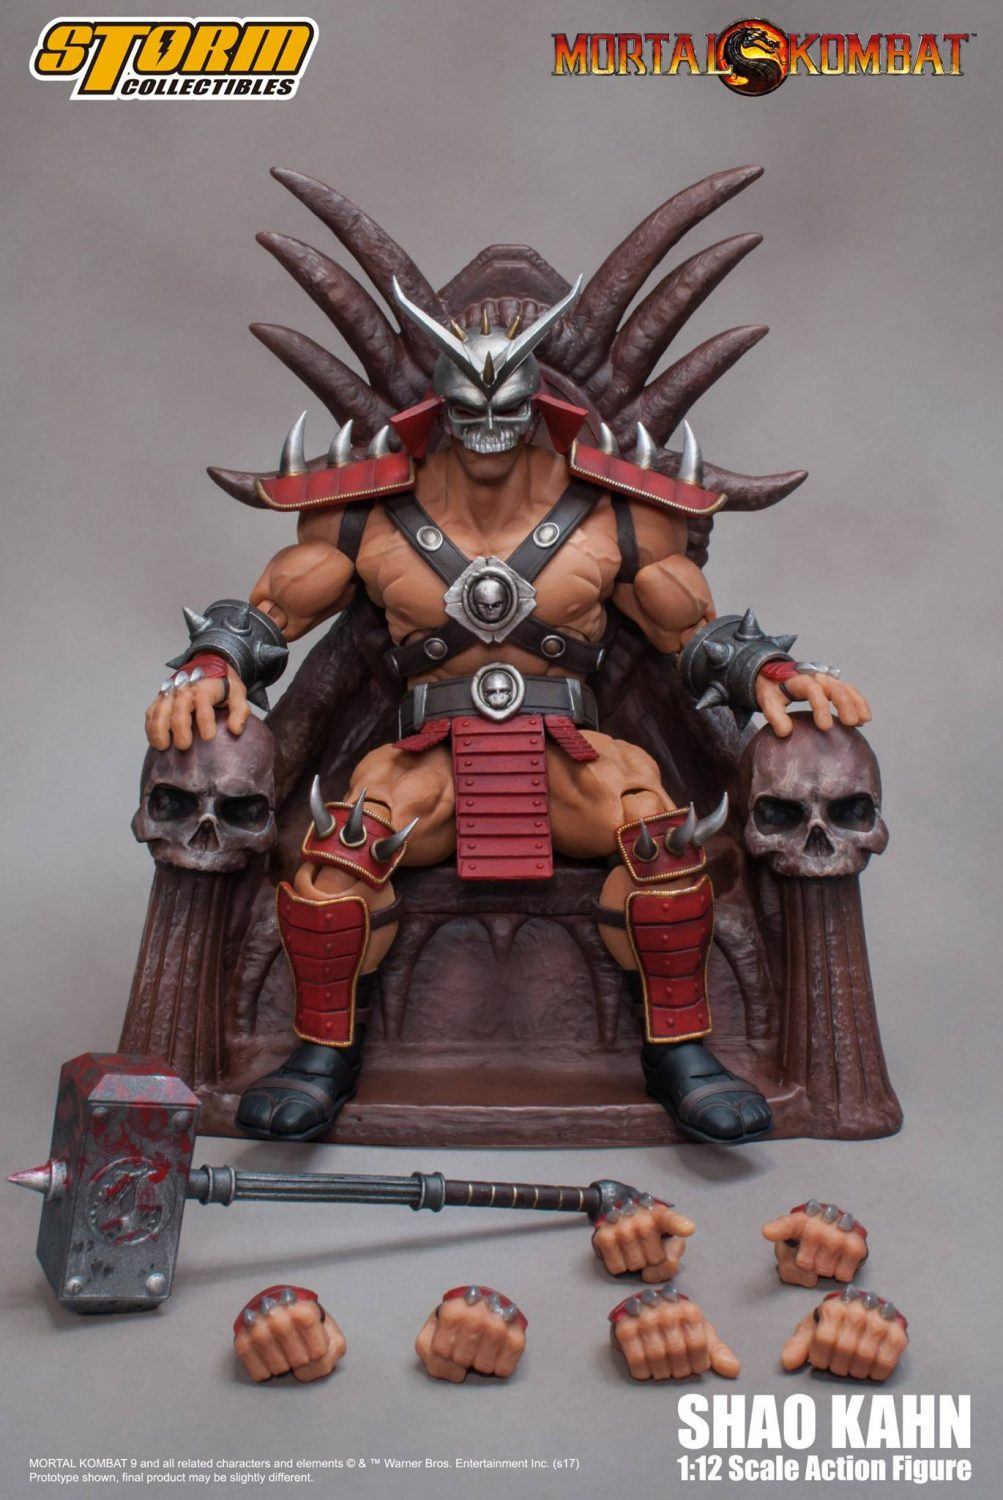 Storm Collectibles Mortal Kombat Shao Kahn 1/12th Scale Figure Pre-Orders